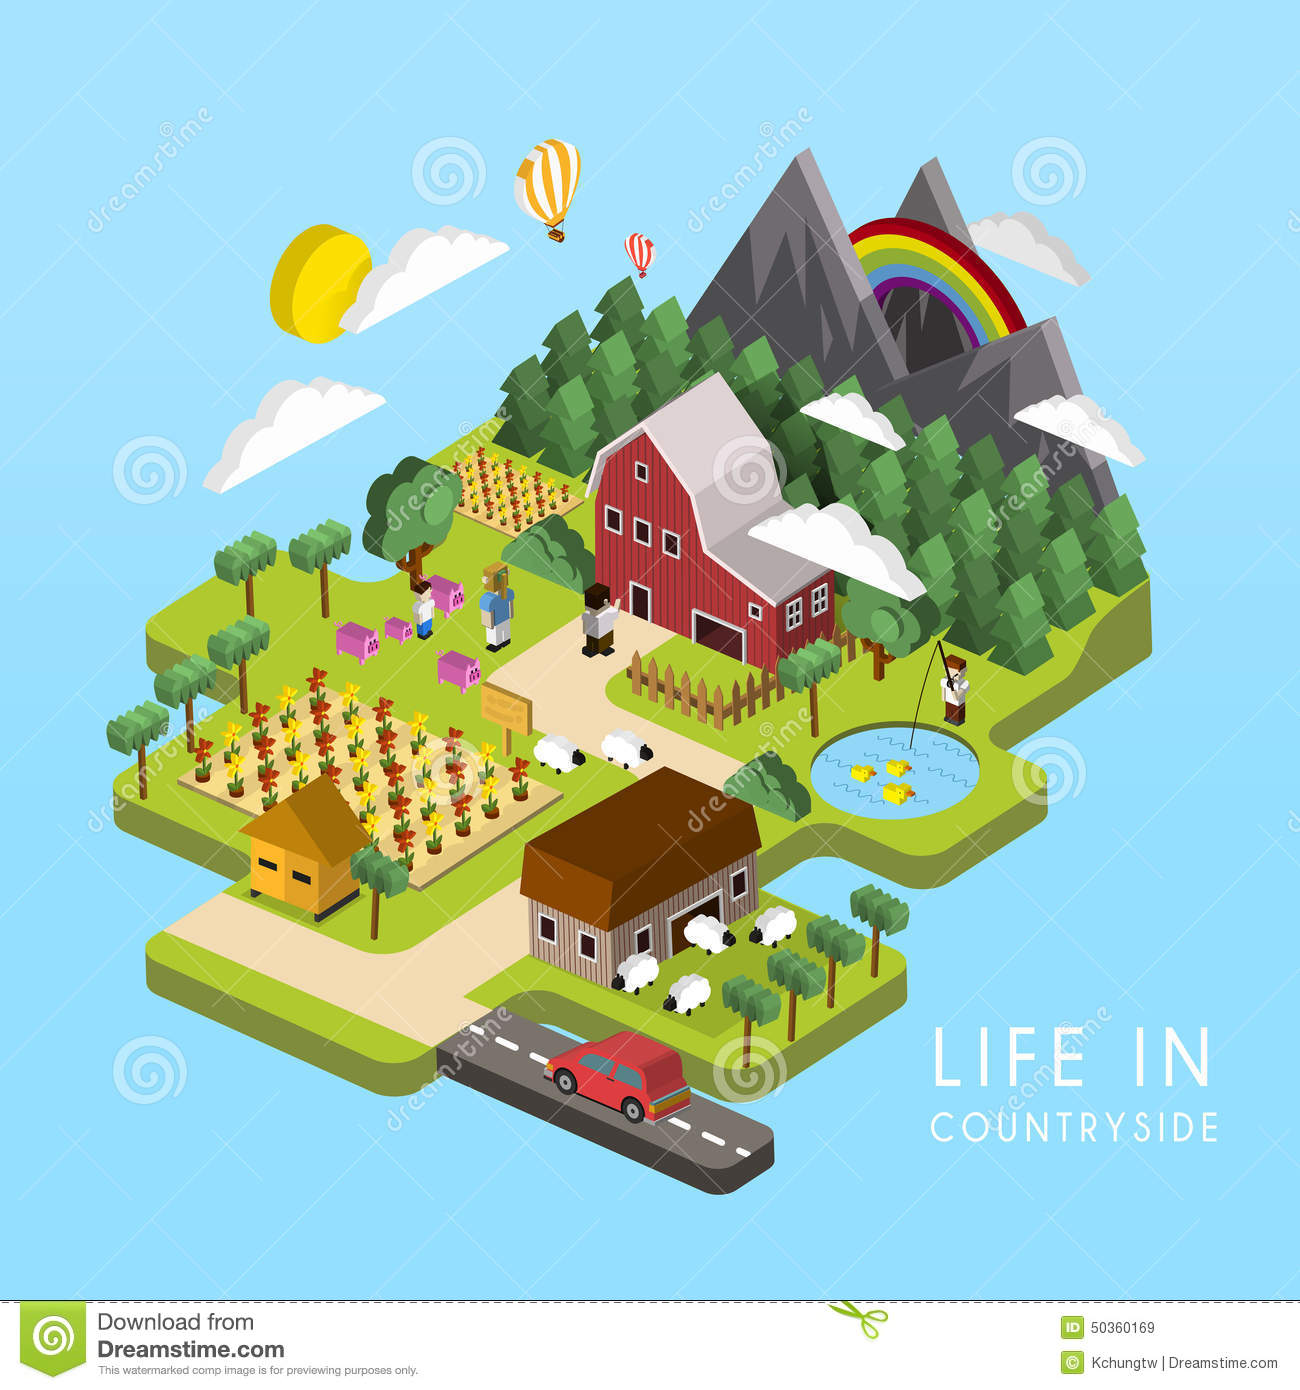 Flat 3d isometric life in countryside illustration stock for 3d flat design online